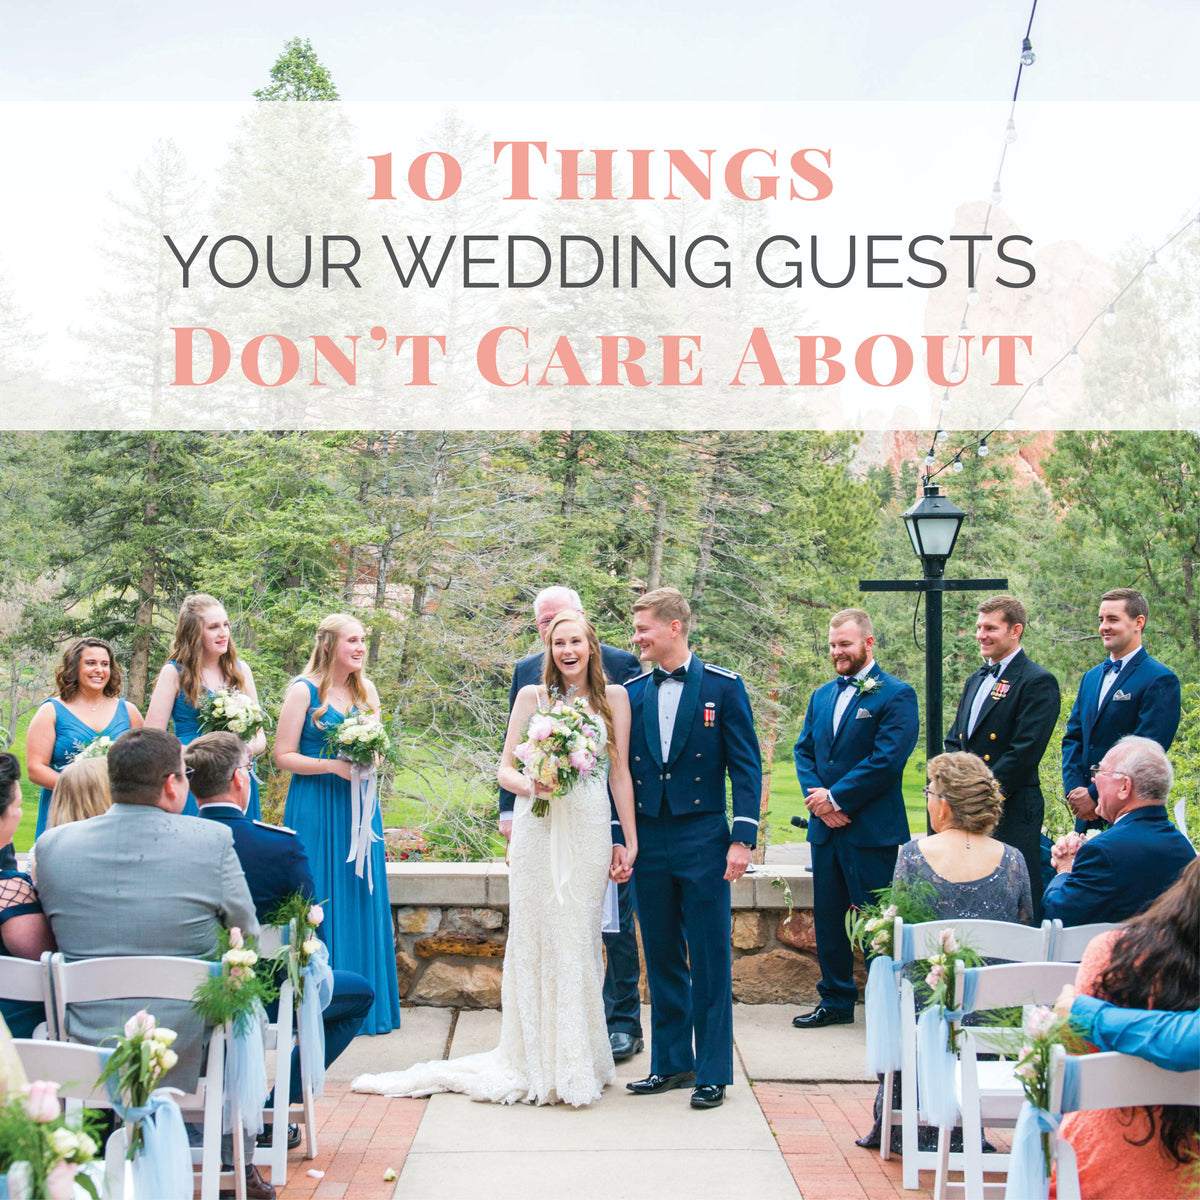 Small Family Wedding Ideas: 10 Things Your Wedding Guests Don't Care About